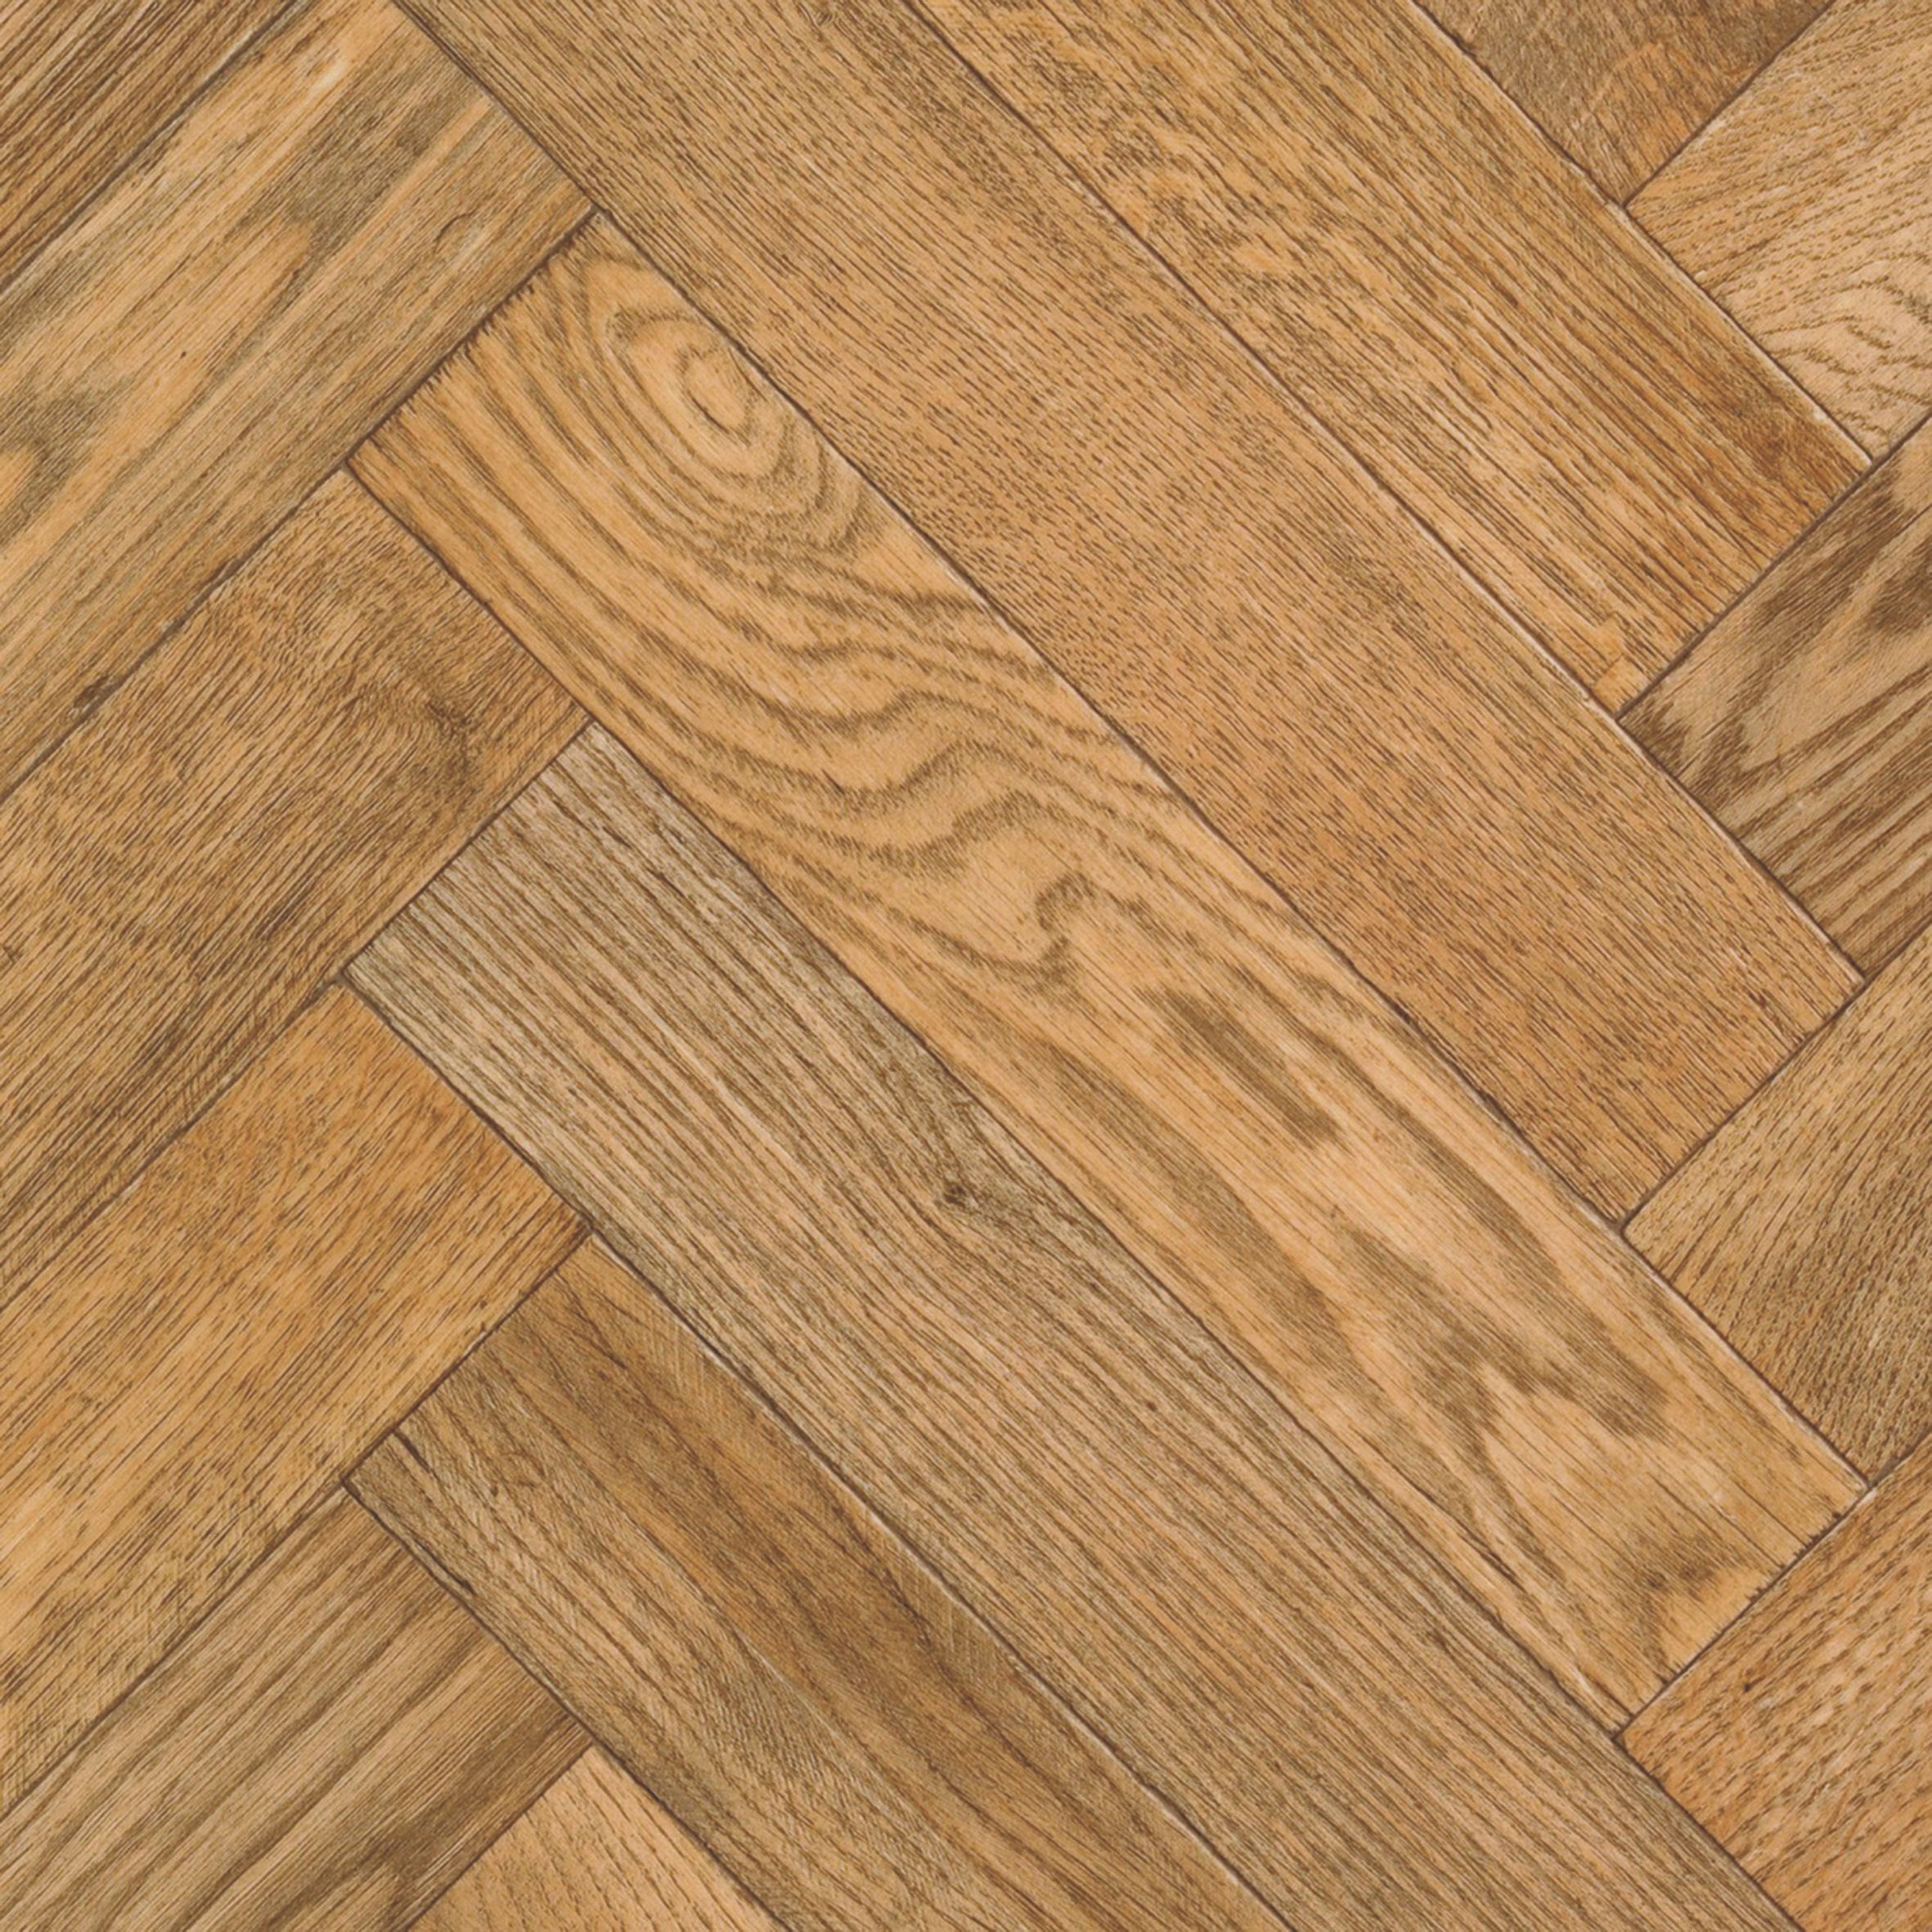 Carillon oak parquet effect vinyl cut to chosen length in store carillon oak parquet effect vinyl cut to chosen length in store departments diy at bq dailygadgetfo Image collections